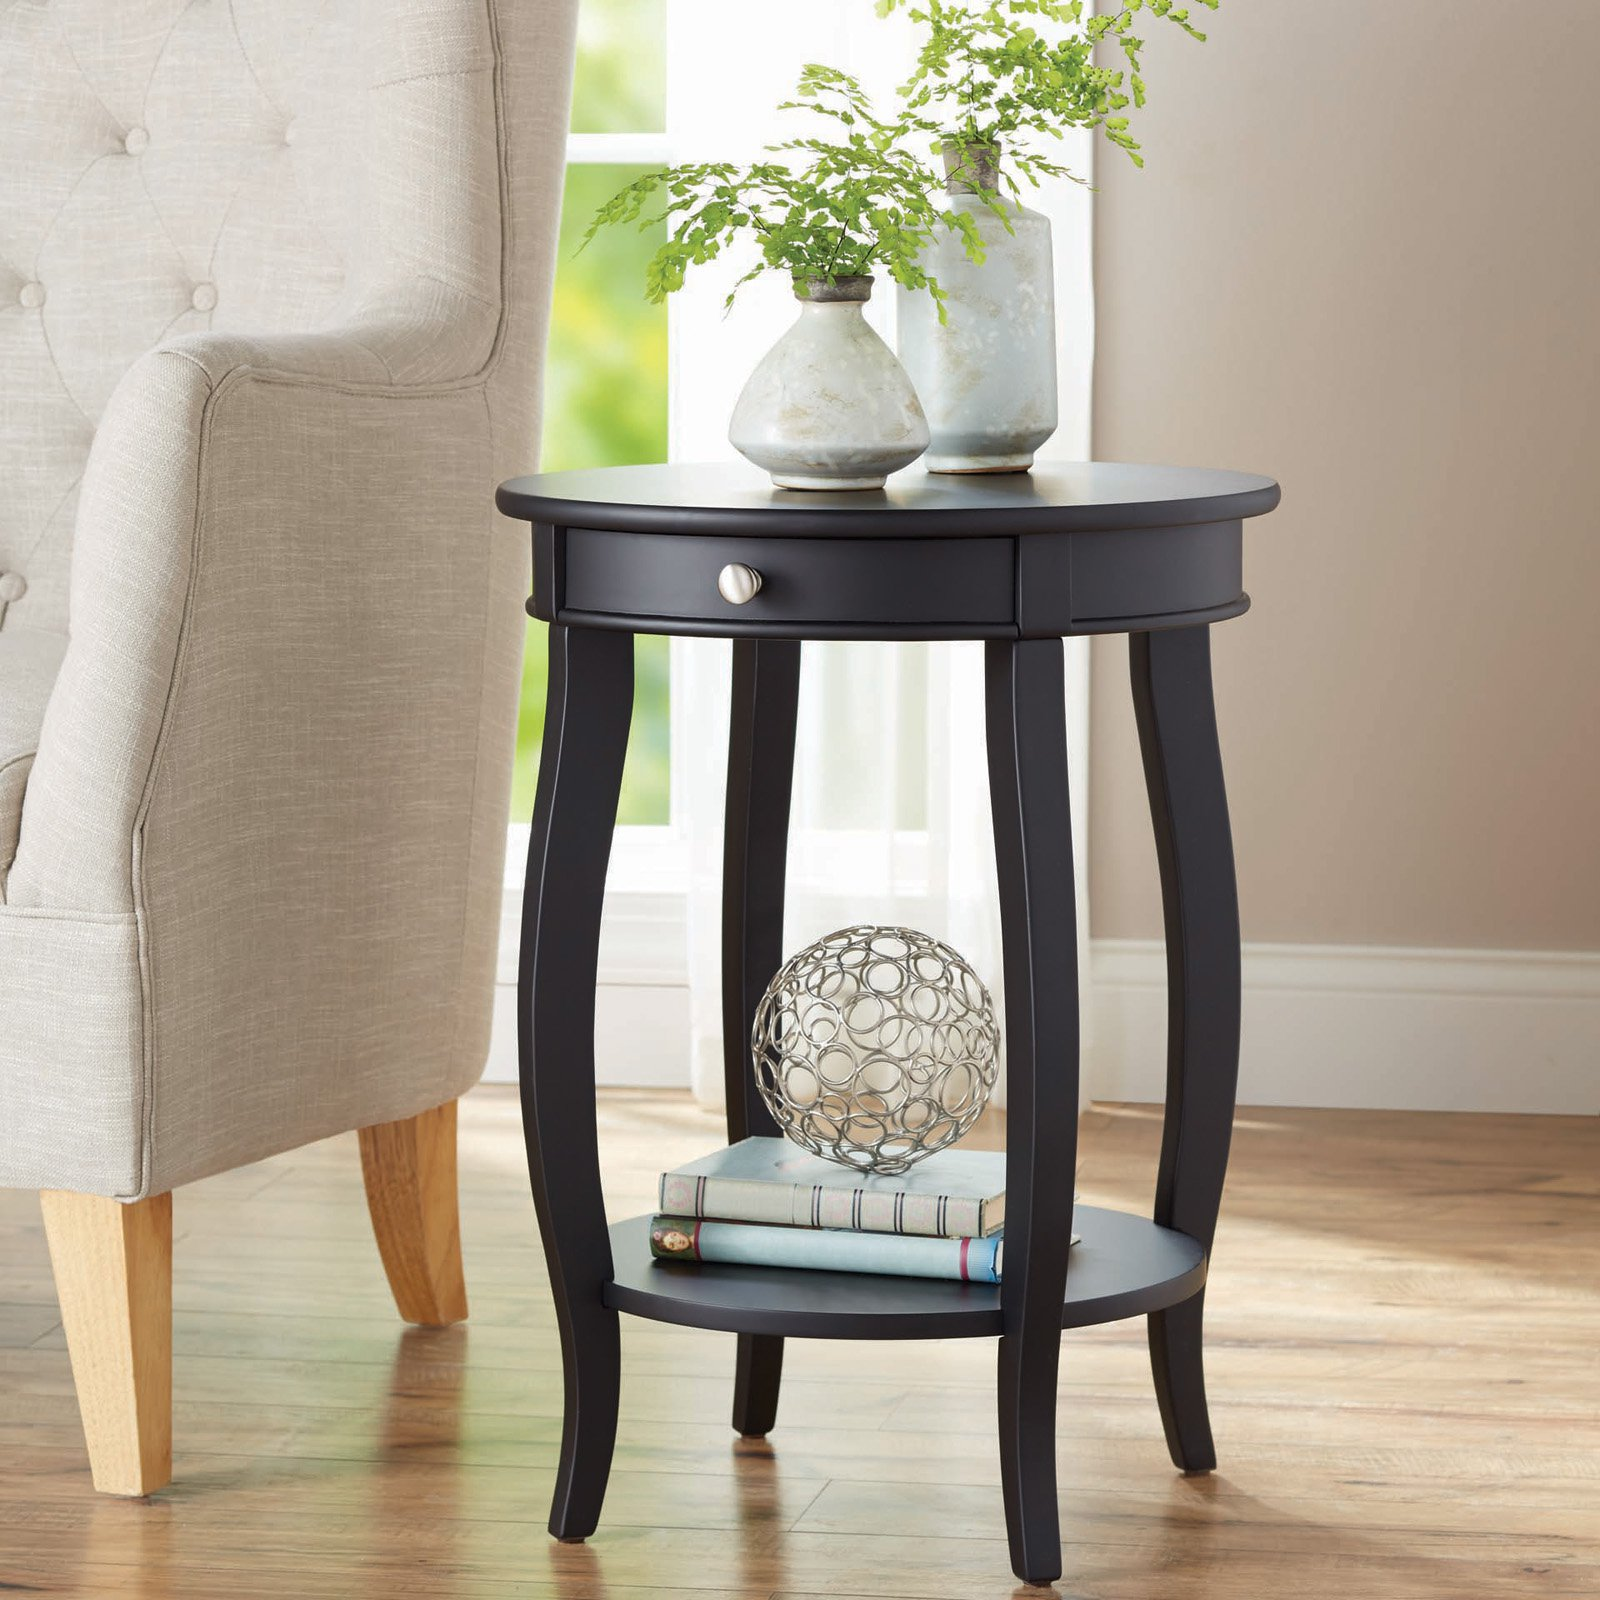 better homes gardens round accent table with drawer multiple distressed blue colors coffee sets ikea dining cloth dark grey end tables black marble eugene walnut modern living